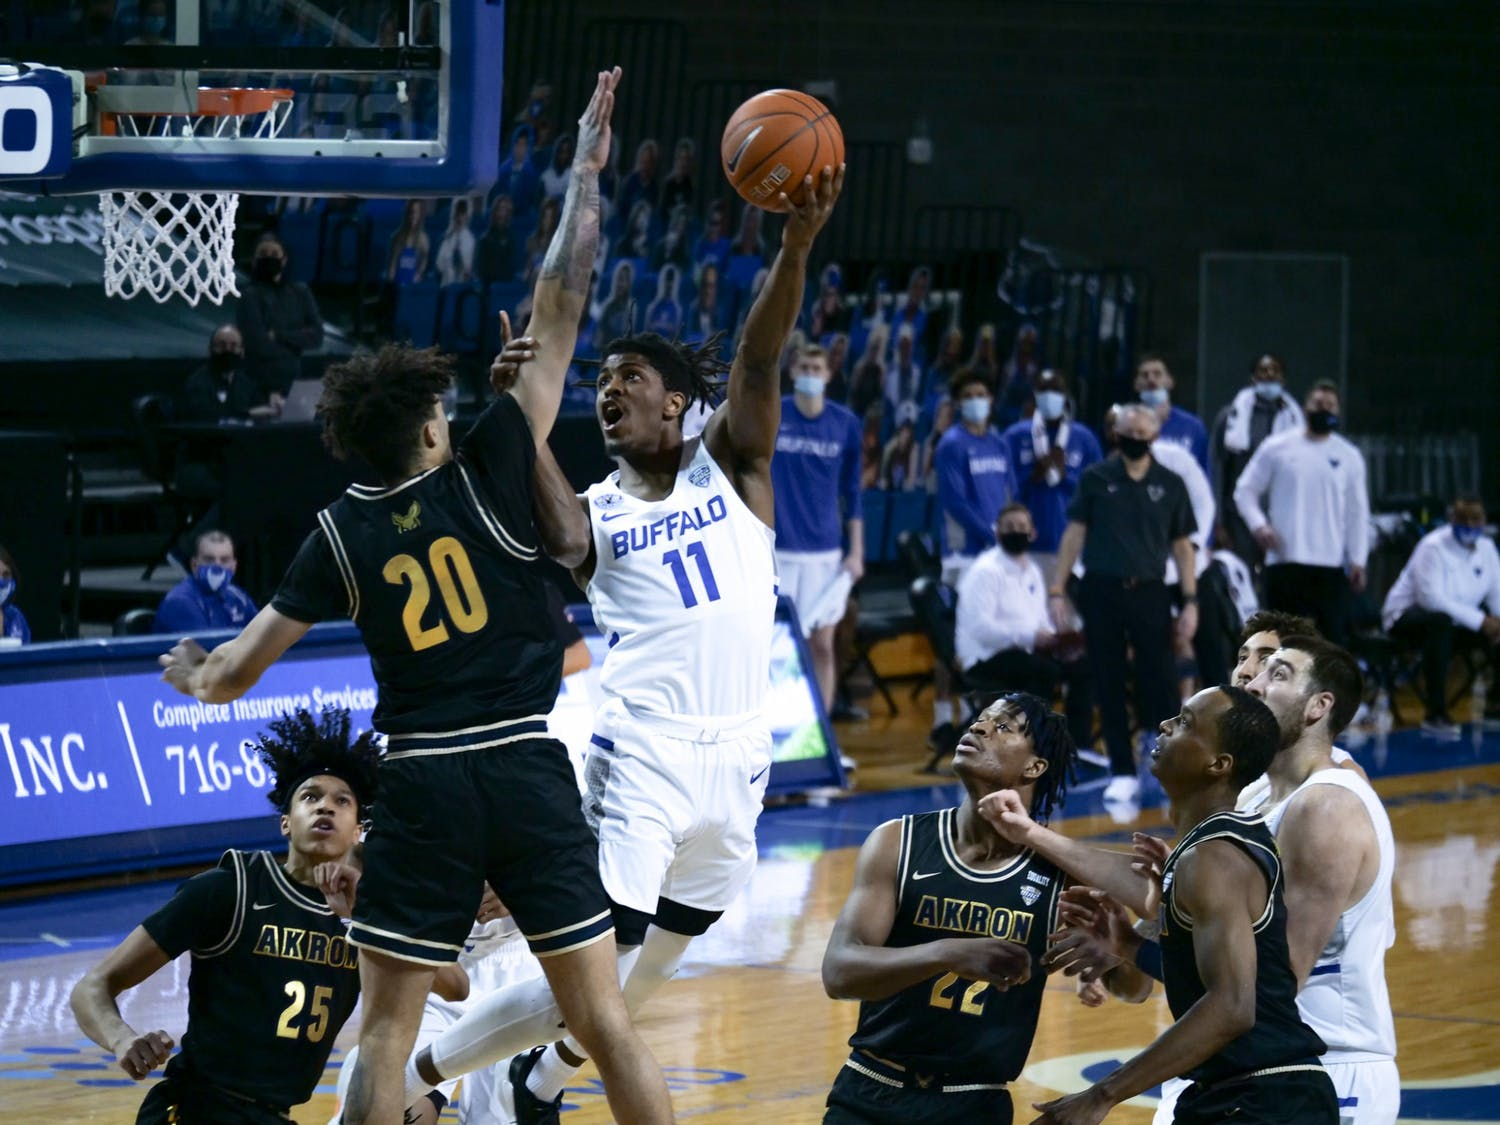 UB men's basketball fell to Colorado State in the first round of the National Invitational Tournament Saturday, effectively ending the Bulls' season.